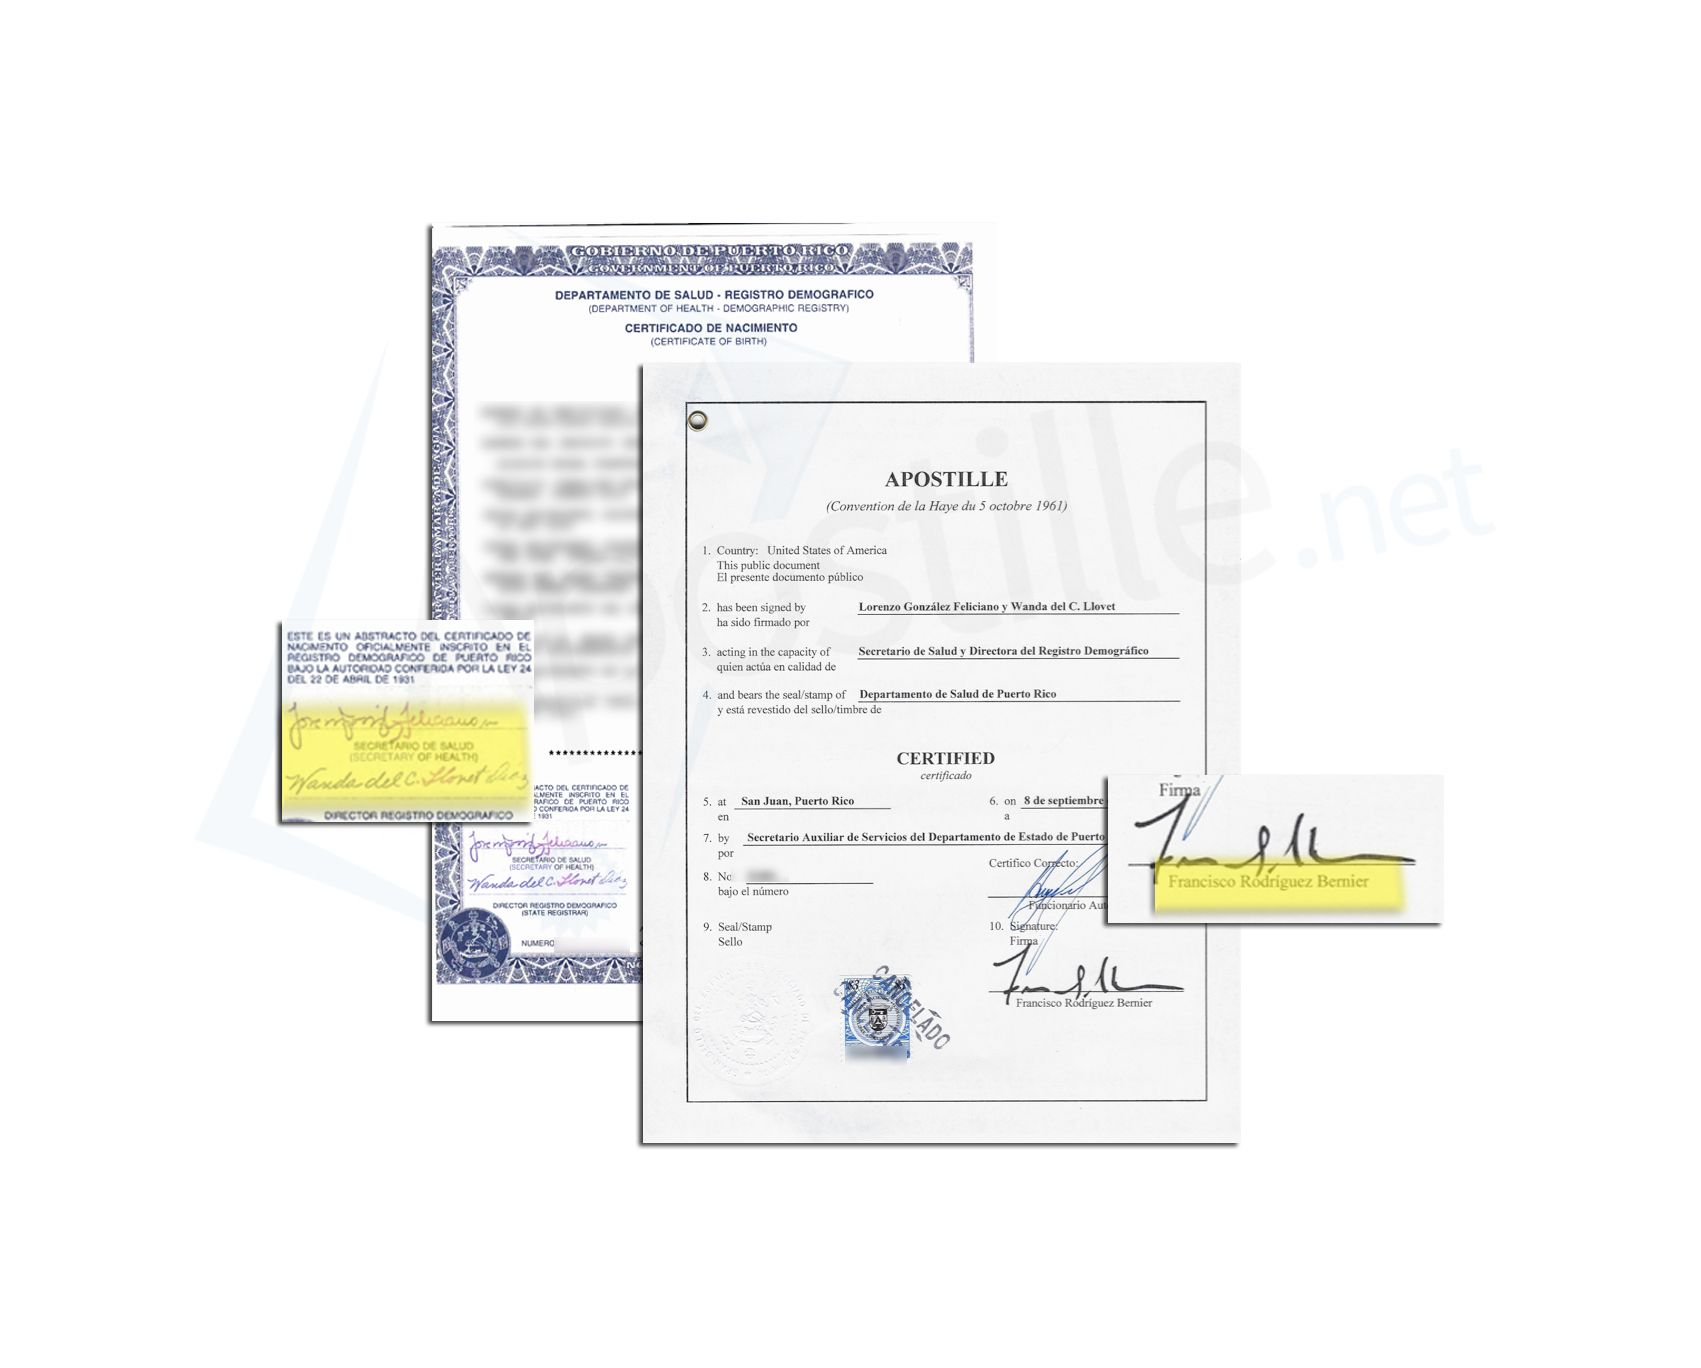 State Of Puerto Rico Apostille Issued By Francisco